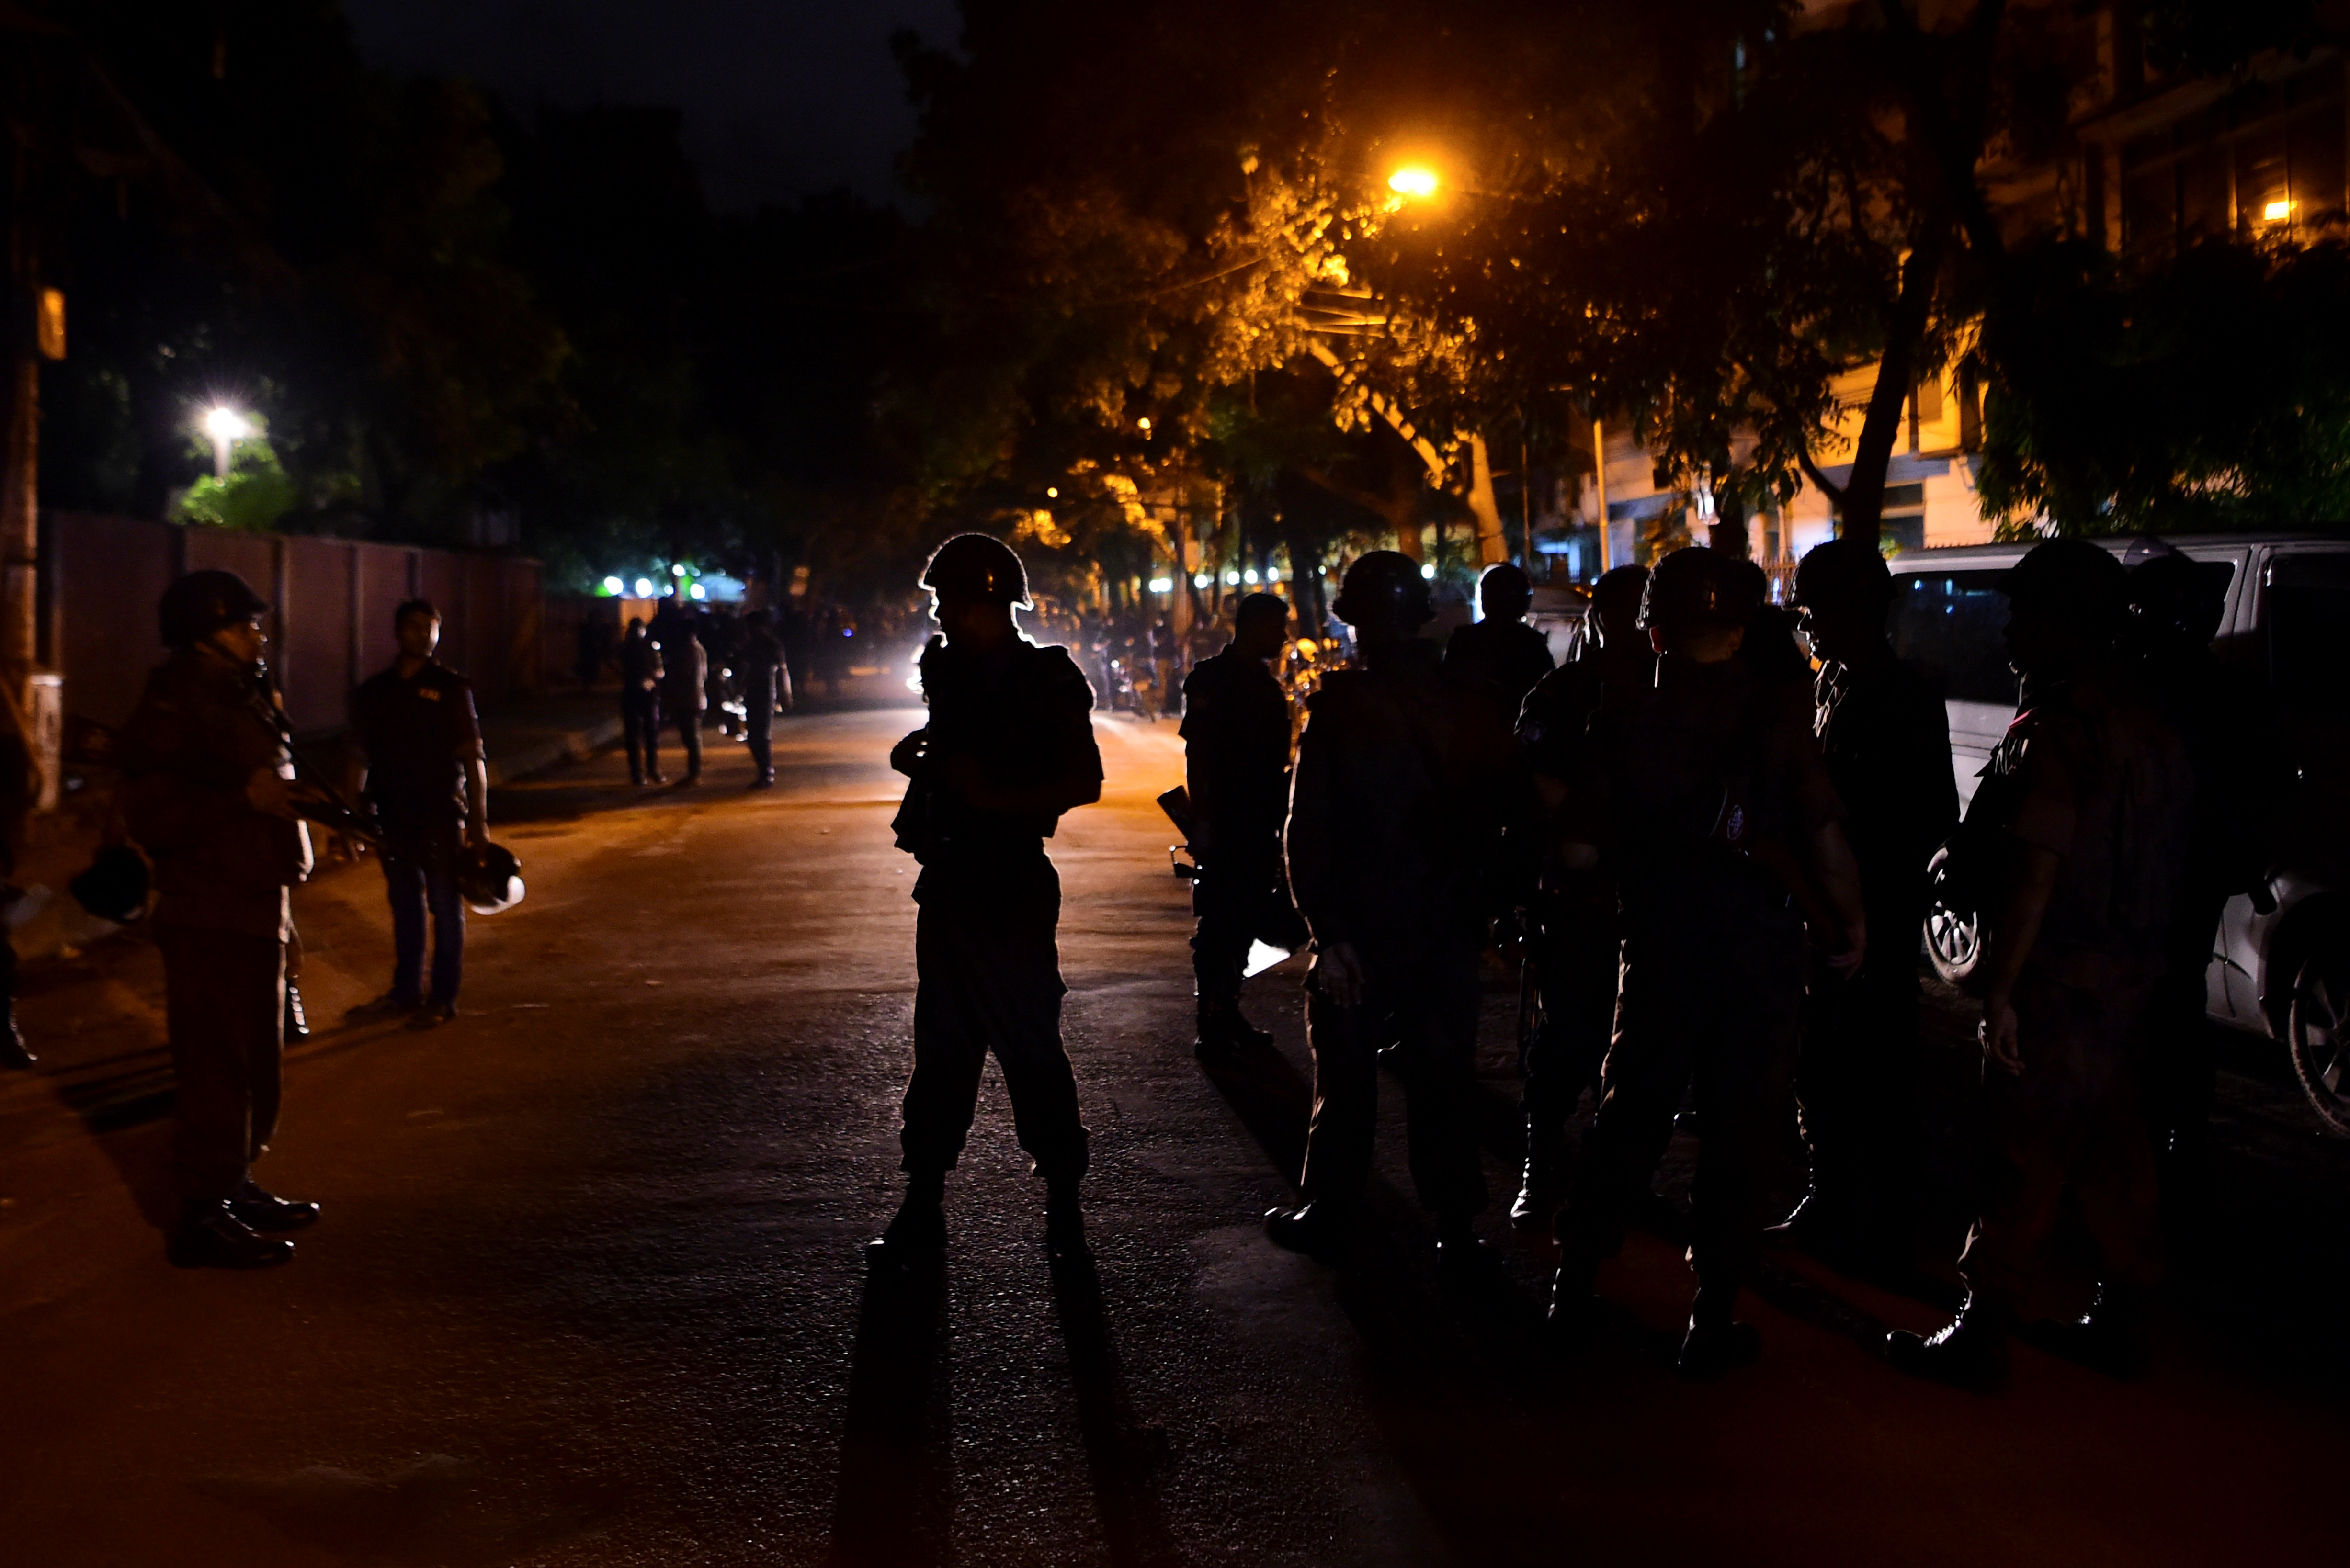 Bangladeshi security personnel stand guard after gunmen stormed a restaurant in Dhaka's high-security diplomatic district early on July 2, 2016.